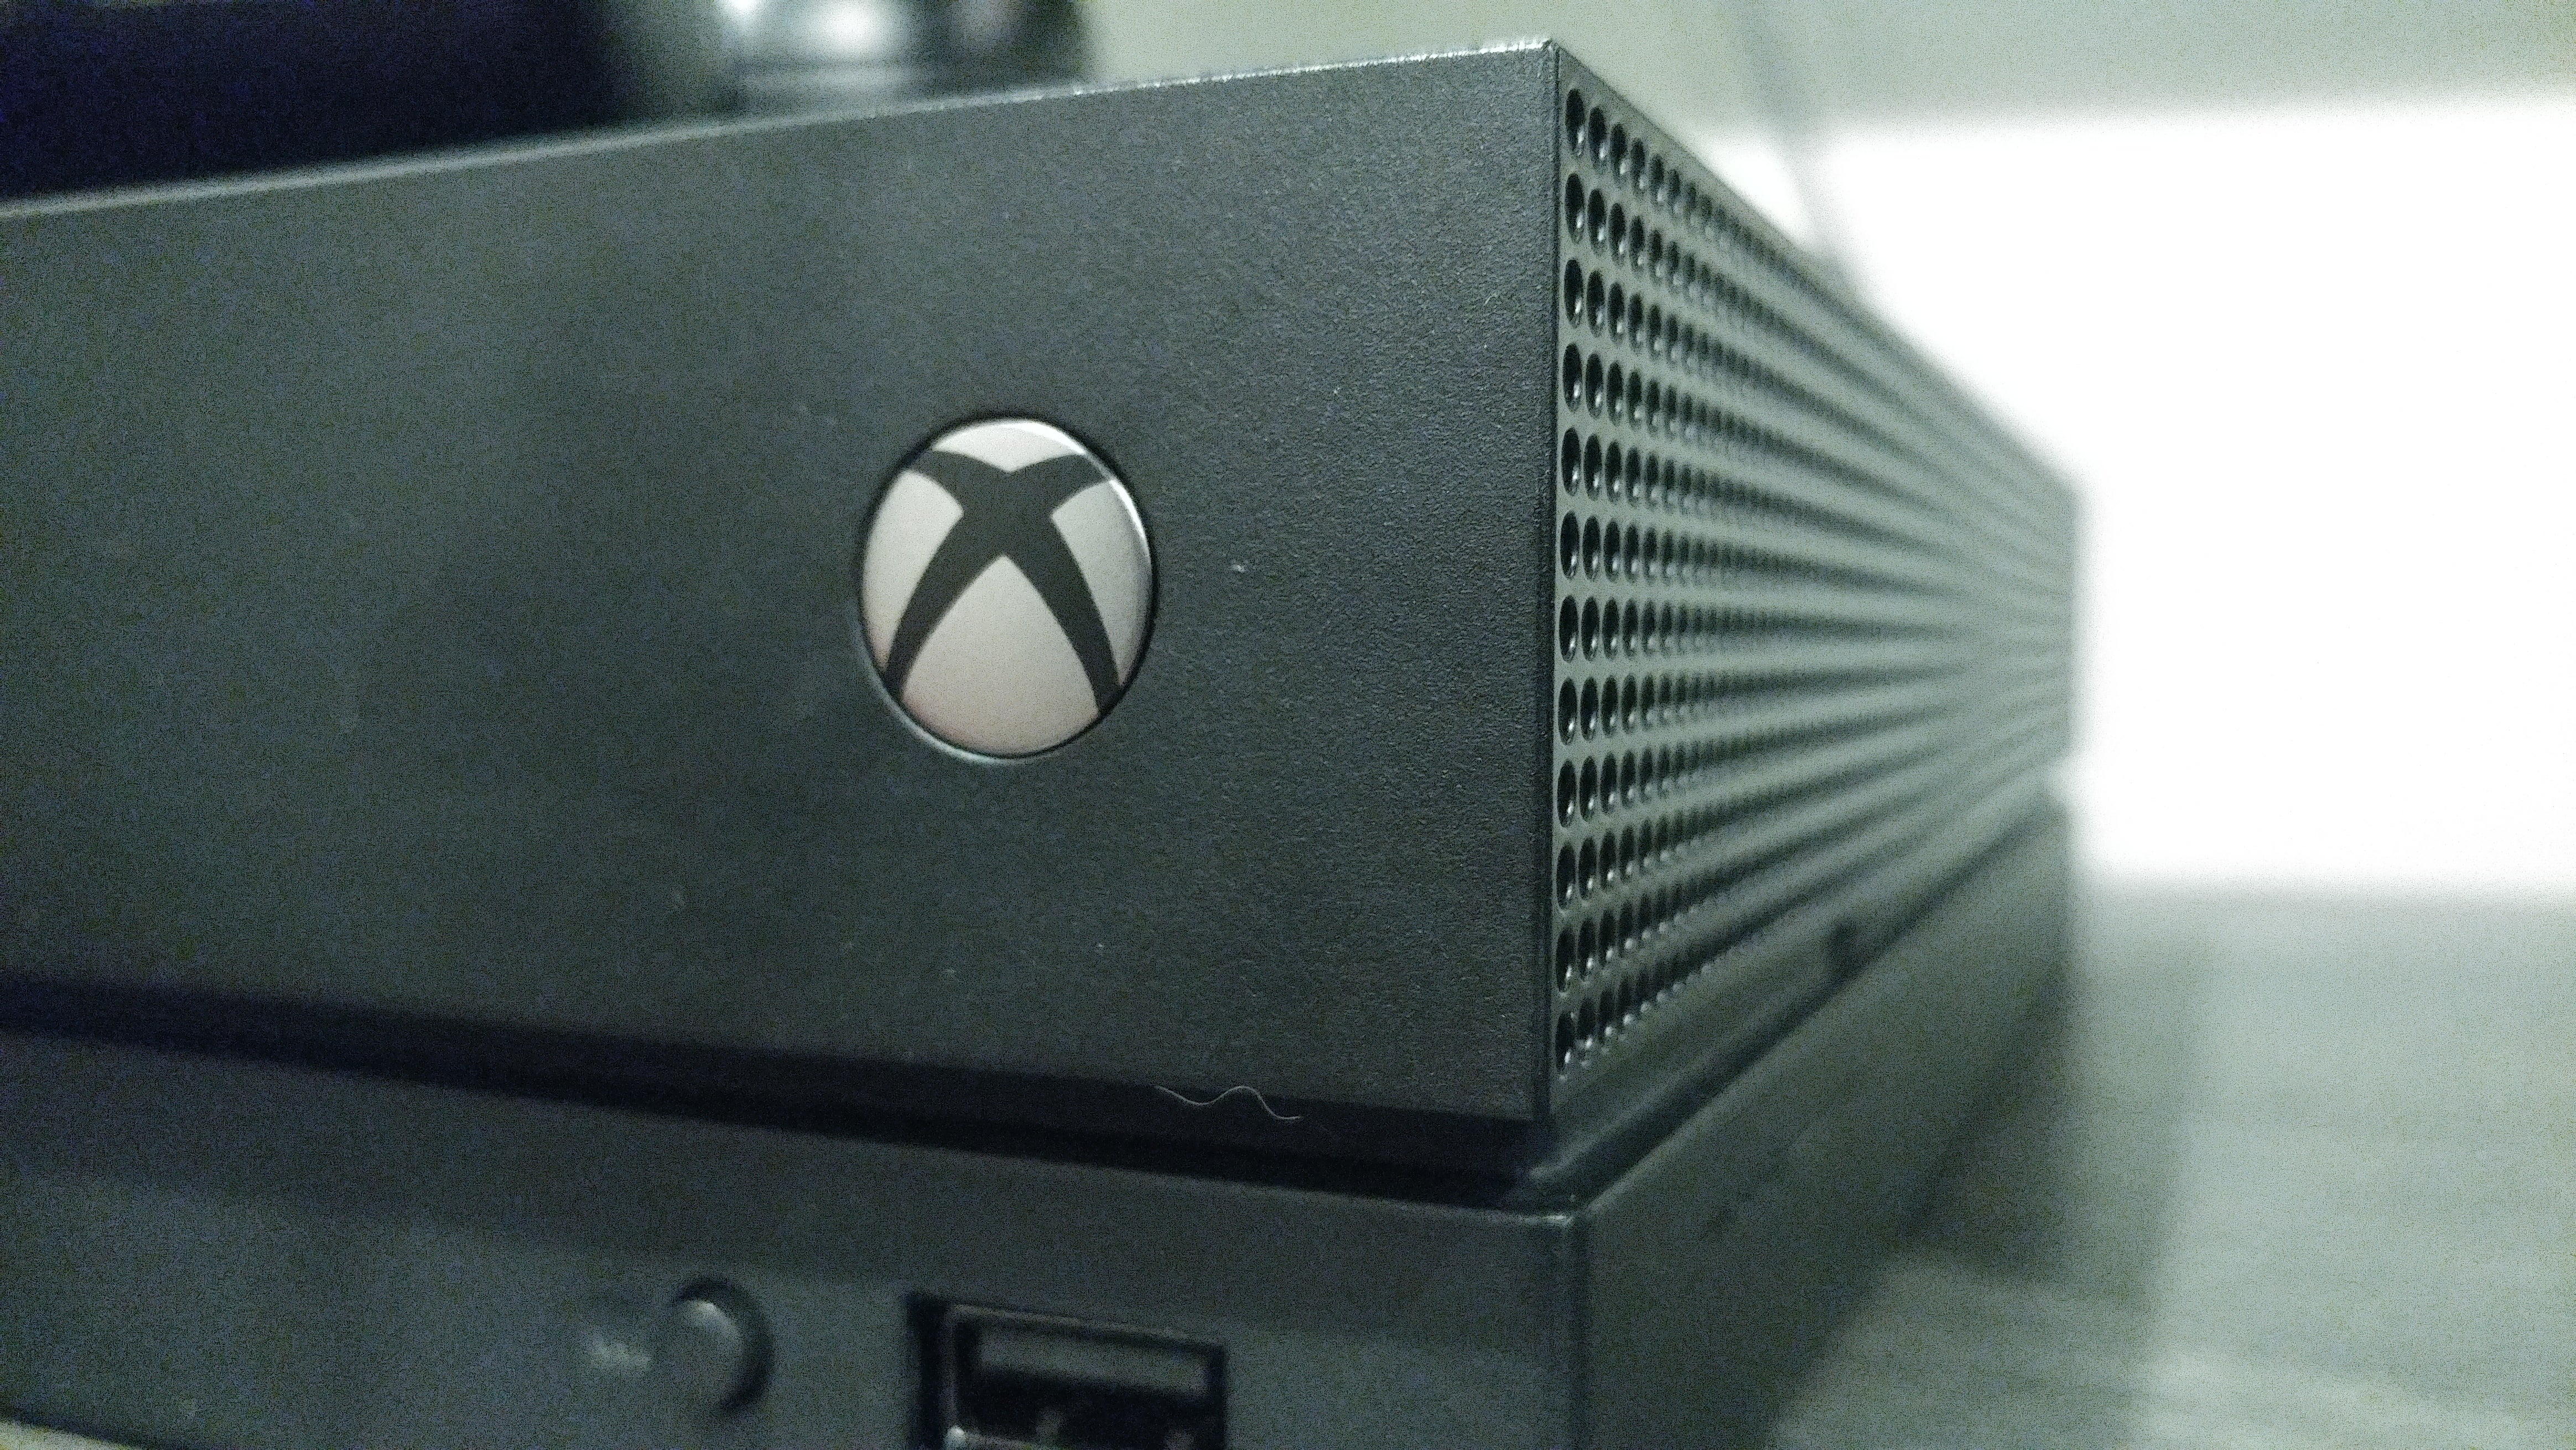 ea6cf0ad0029 Xbox One X review  A surprising amount of power in a very small box ...